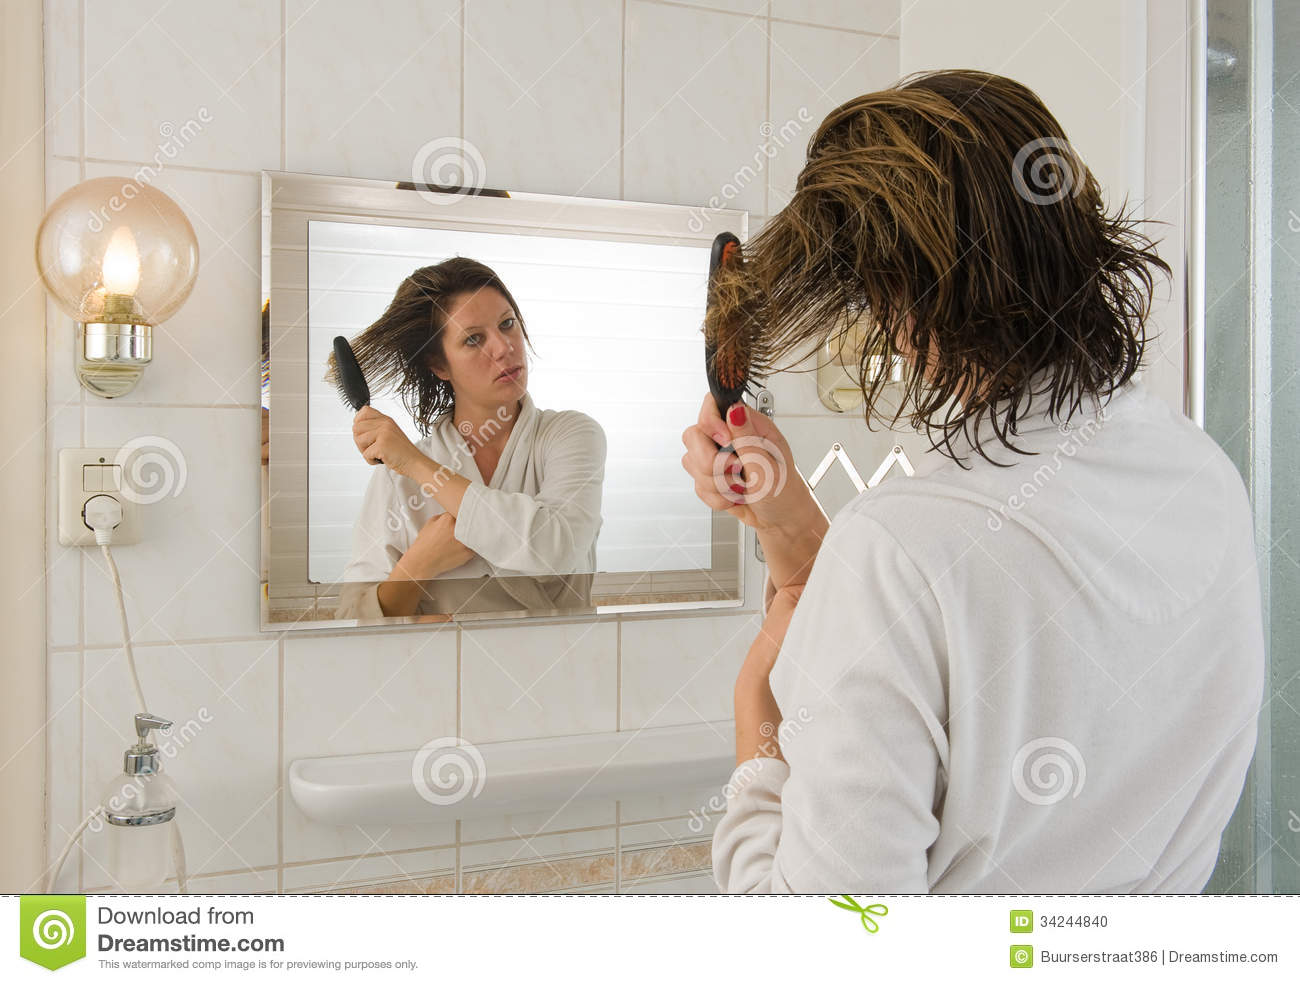 Combing Hair In Bathroom Stock Photo Image Of Wife Hair 34244840